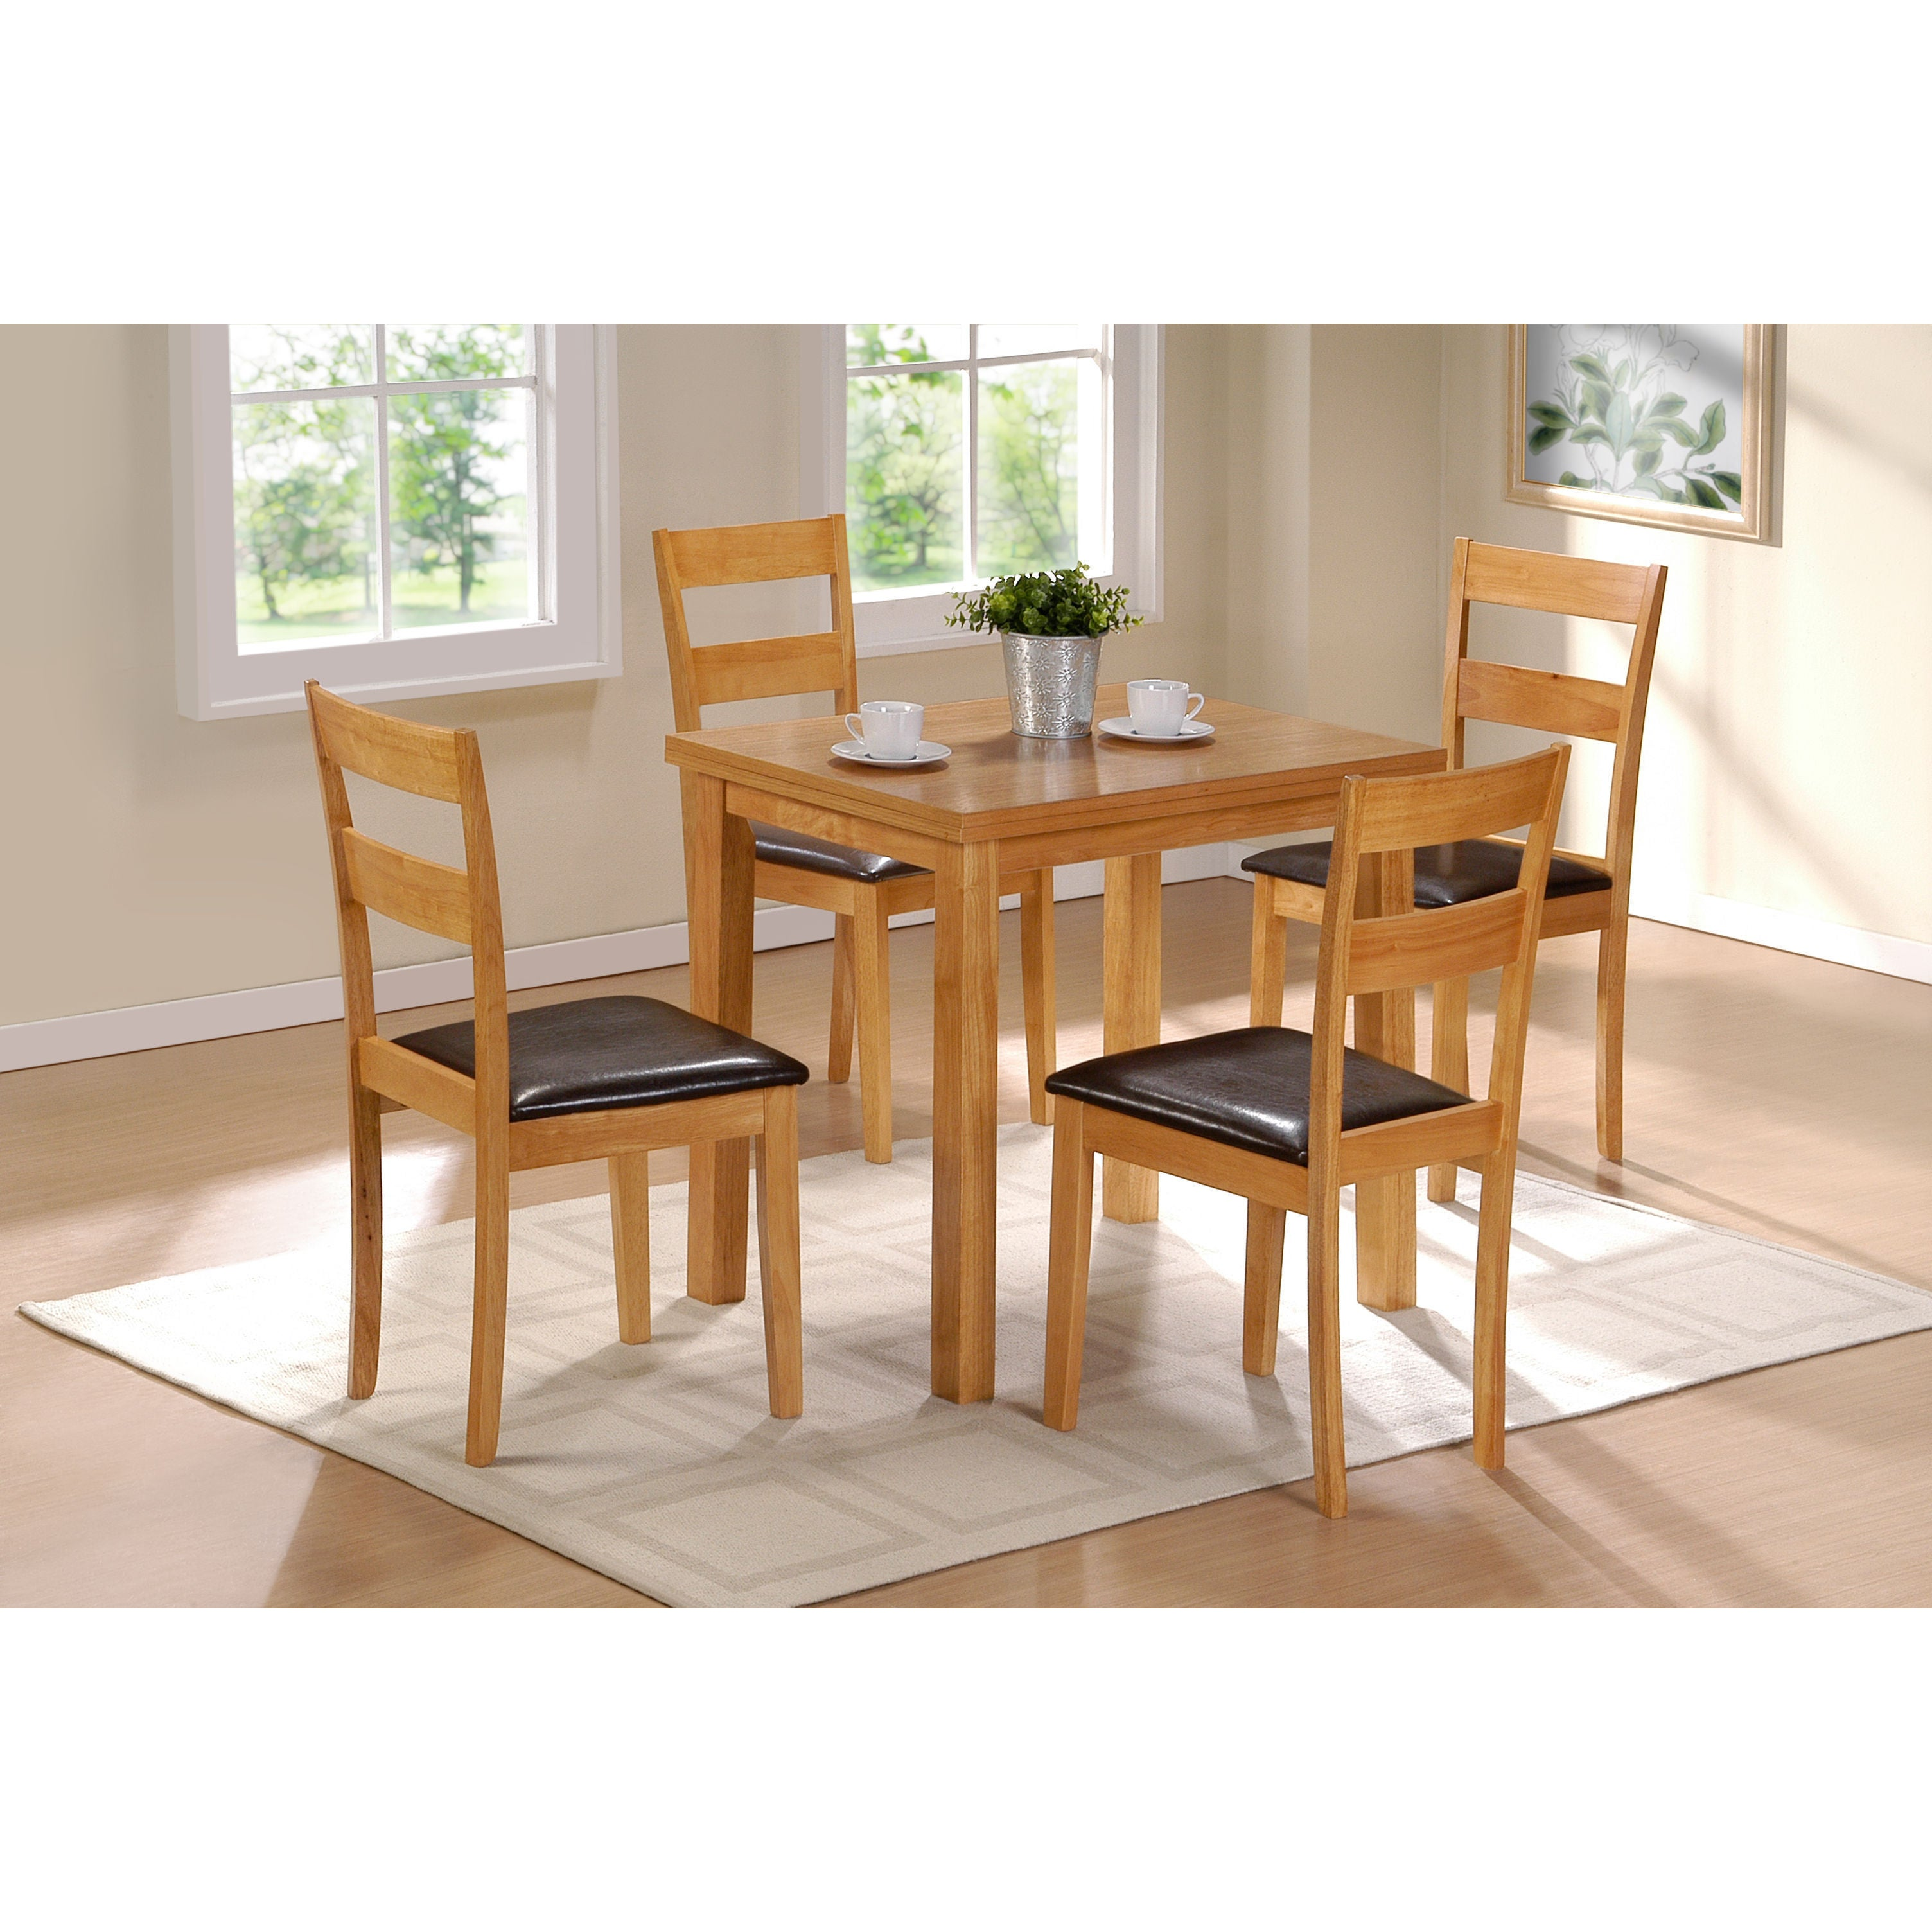 Shop colorado natural finish folding dining table on sale free shipping today overstock com 11668636